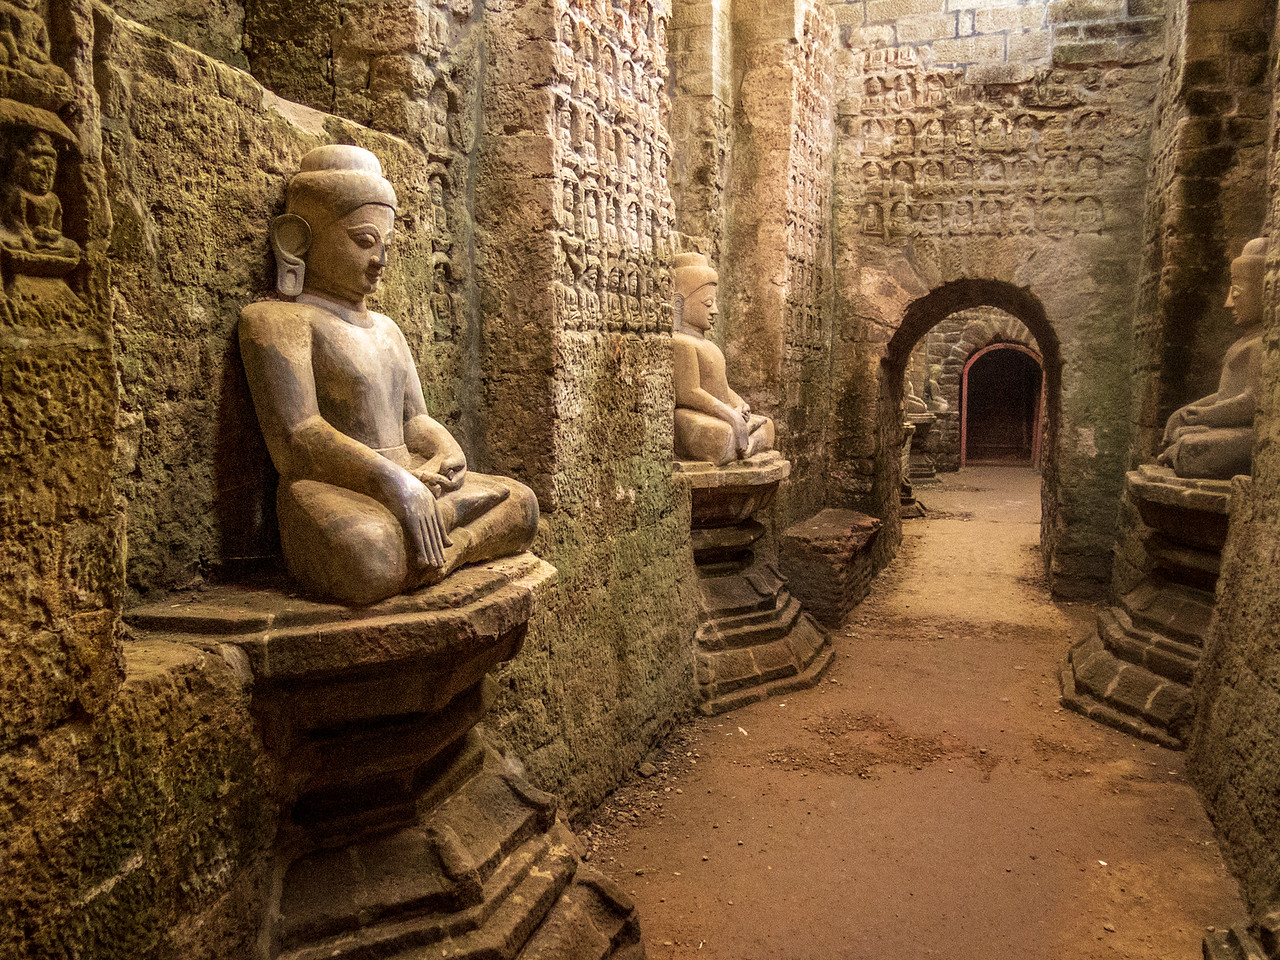 Interior of Kothaung Paya Temple in Mrauk OO